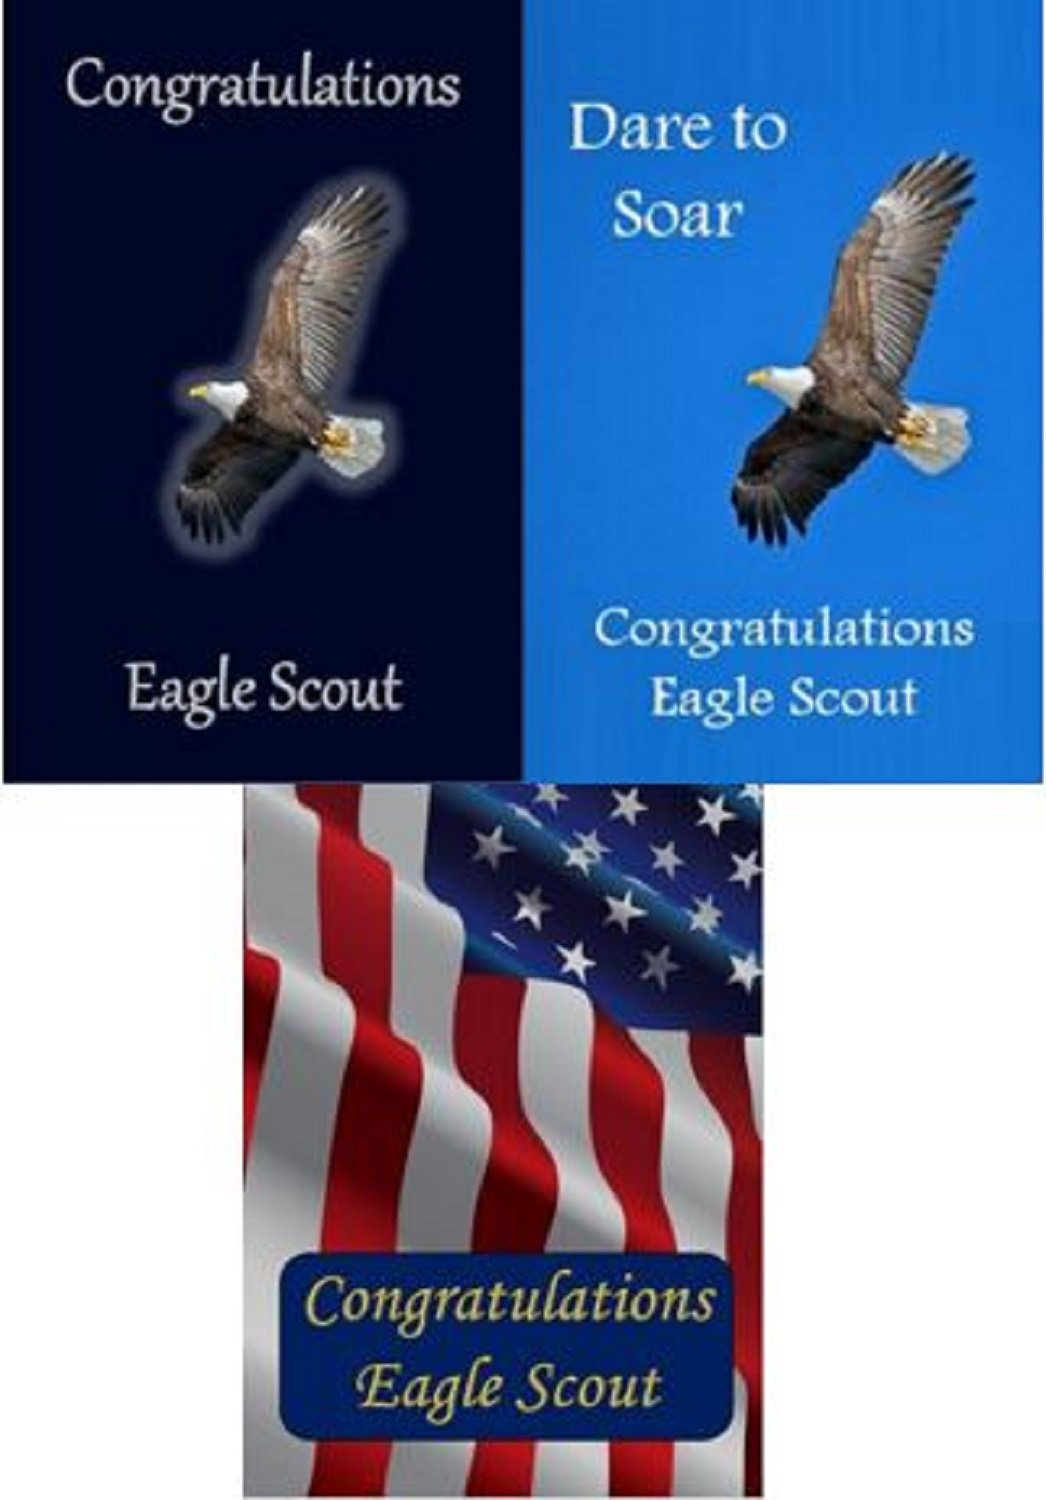 photo relating to Eagle Scout Congratulations Card Printable called Eagle Scout Congratulations Card: Pack of 6 (3 Patterns)